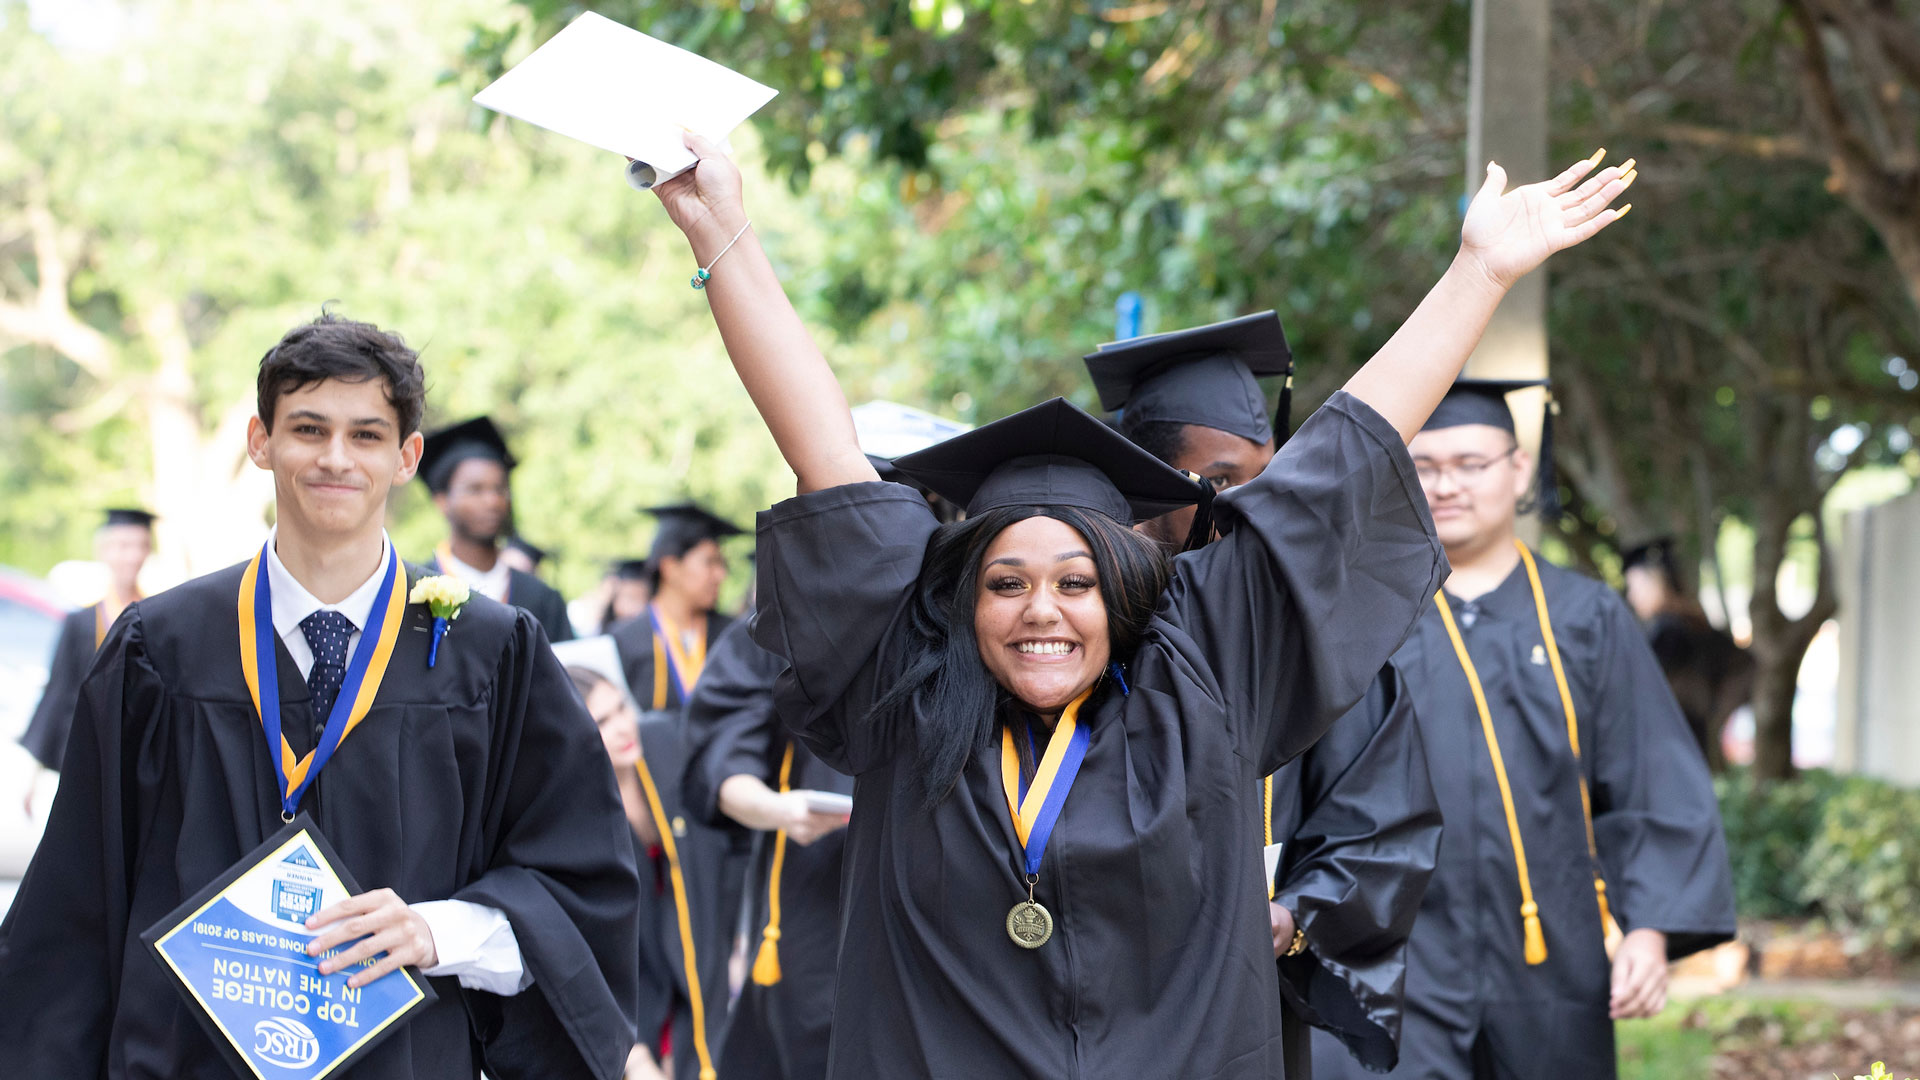 Students celebrate at the 2019 IRSC Adult Education Graduation.